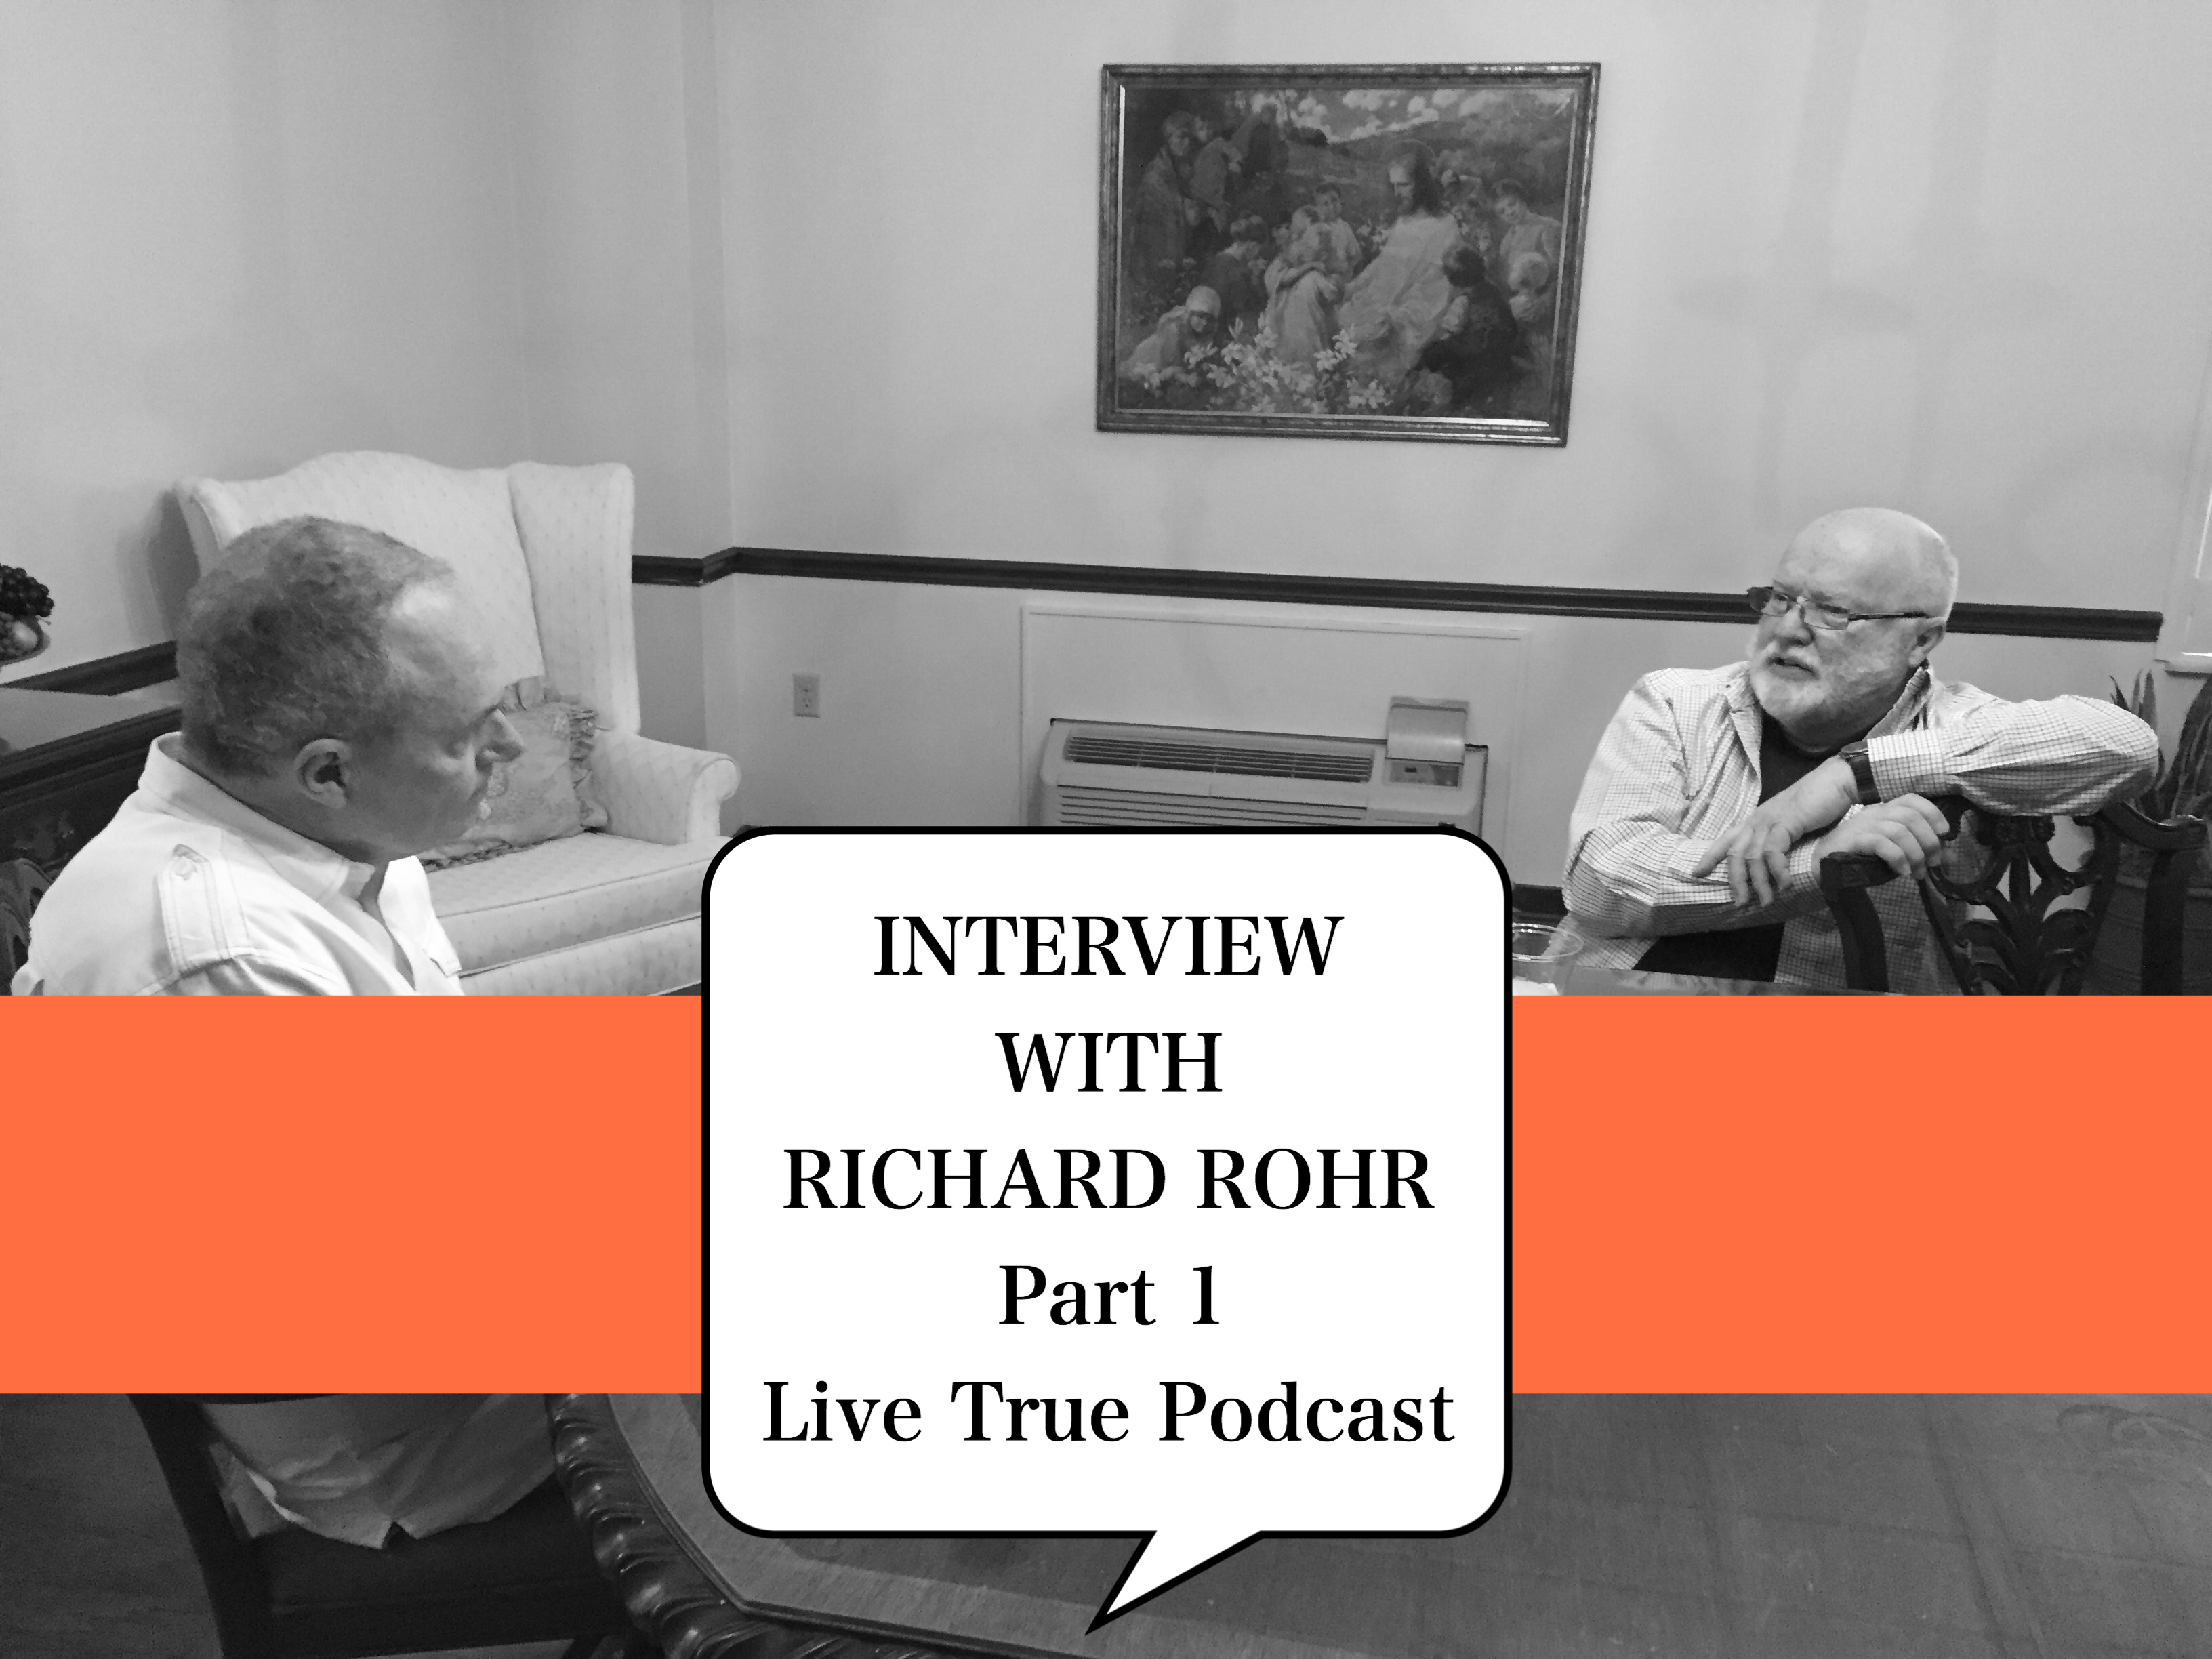 Live True Podcast An Interview With Richard Rohr By David Loveless Part 1